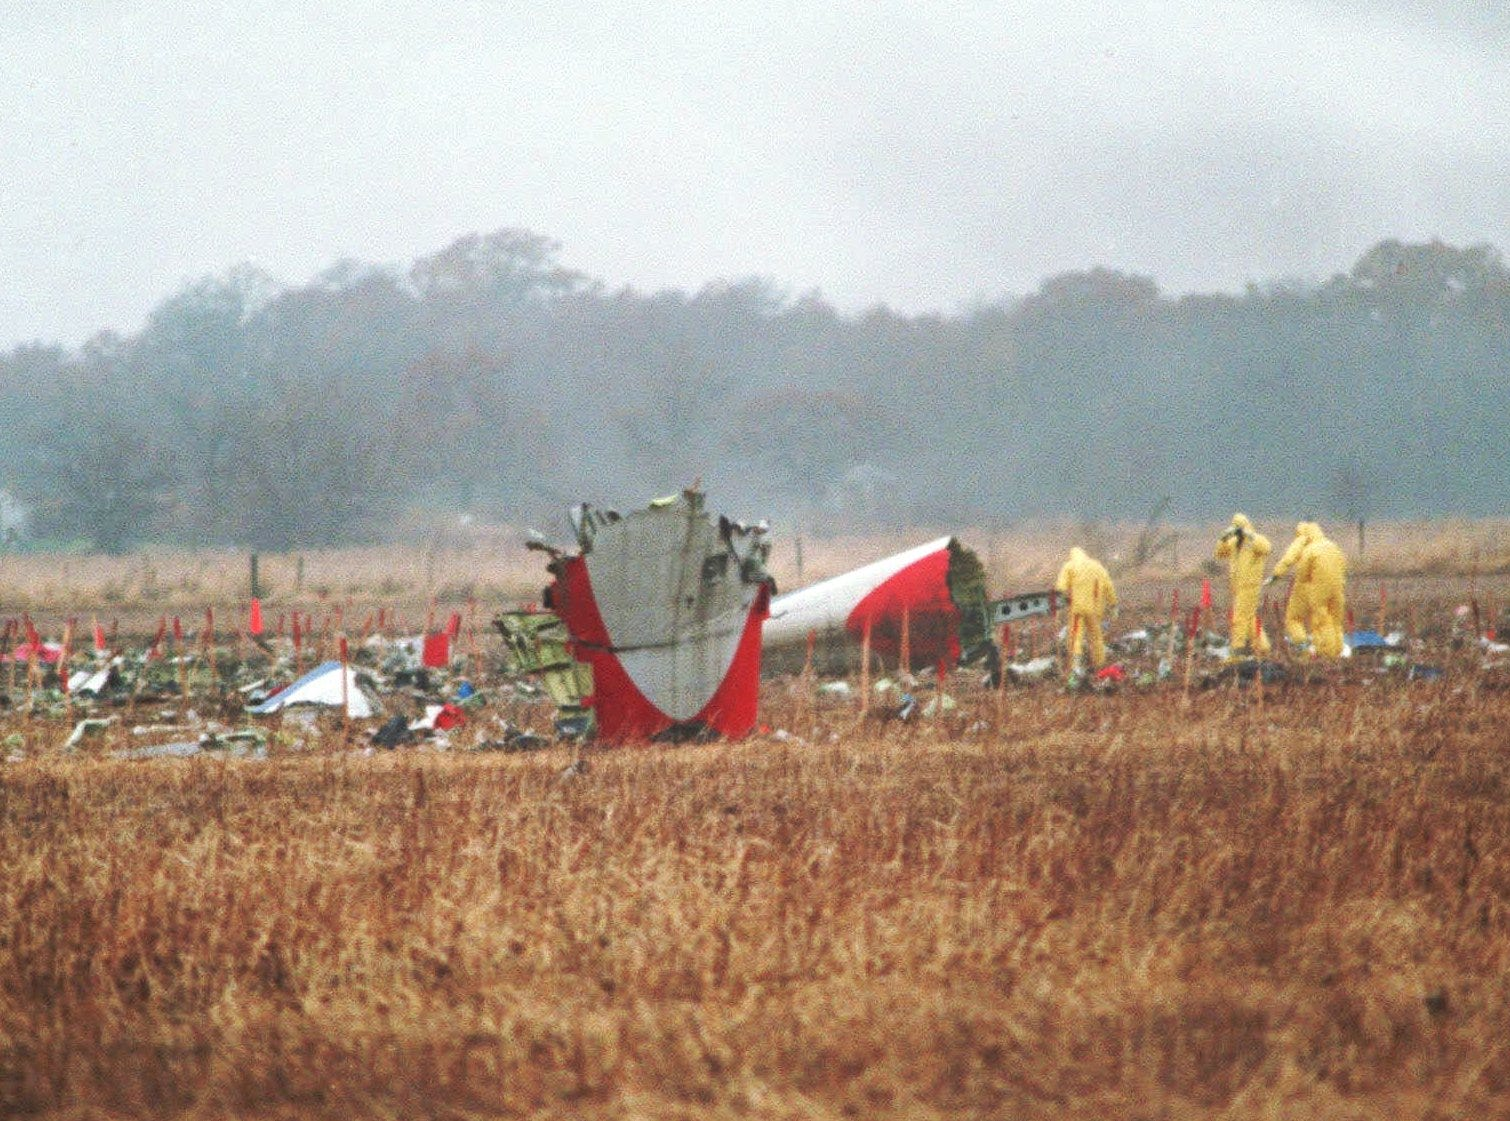 Investigators search the crash site of American Eagle Flight 4184 in a field near Roselawn, Ind., on Nov. 4, 1994. Families of some of the 68 people killed in the American Eagle crash settled their lawsuits with the airline and manufacturers of the airplane for $110 million on Monday, Sept. 22, 1997. Flight 4184, bound from Indianapolis to O'Hare International Airport, was in a holding pattern in a freezing rain the evening of Oct. 31, 1994, when it suddenly rolled and plunged to the ground. (AP Photo/POOL, Charles Bennett)